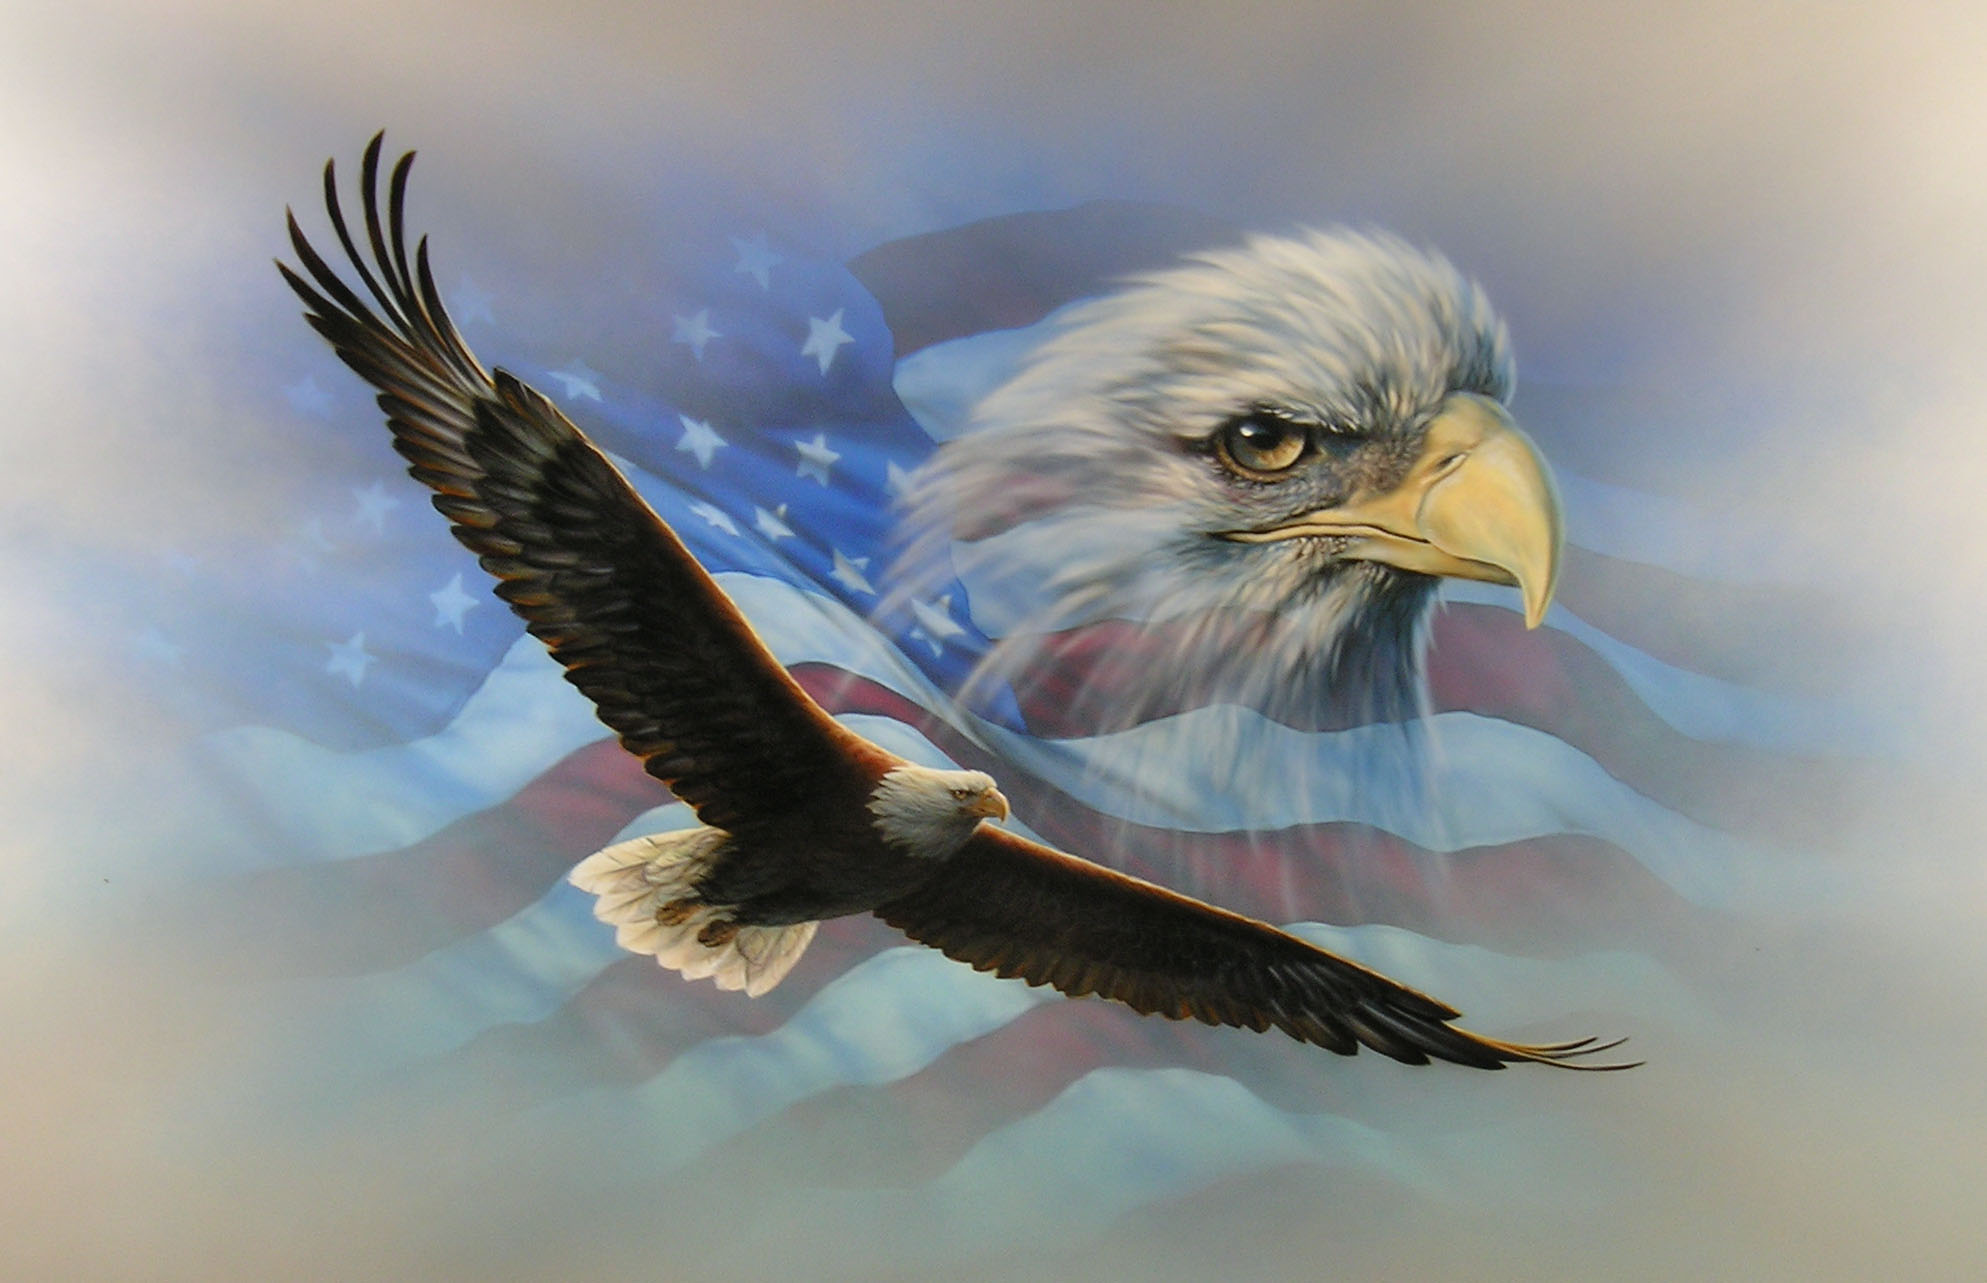 wallpaper of the day: american flag eagle - common sense evaluation